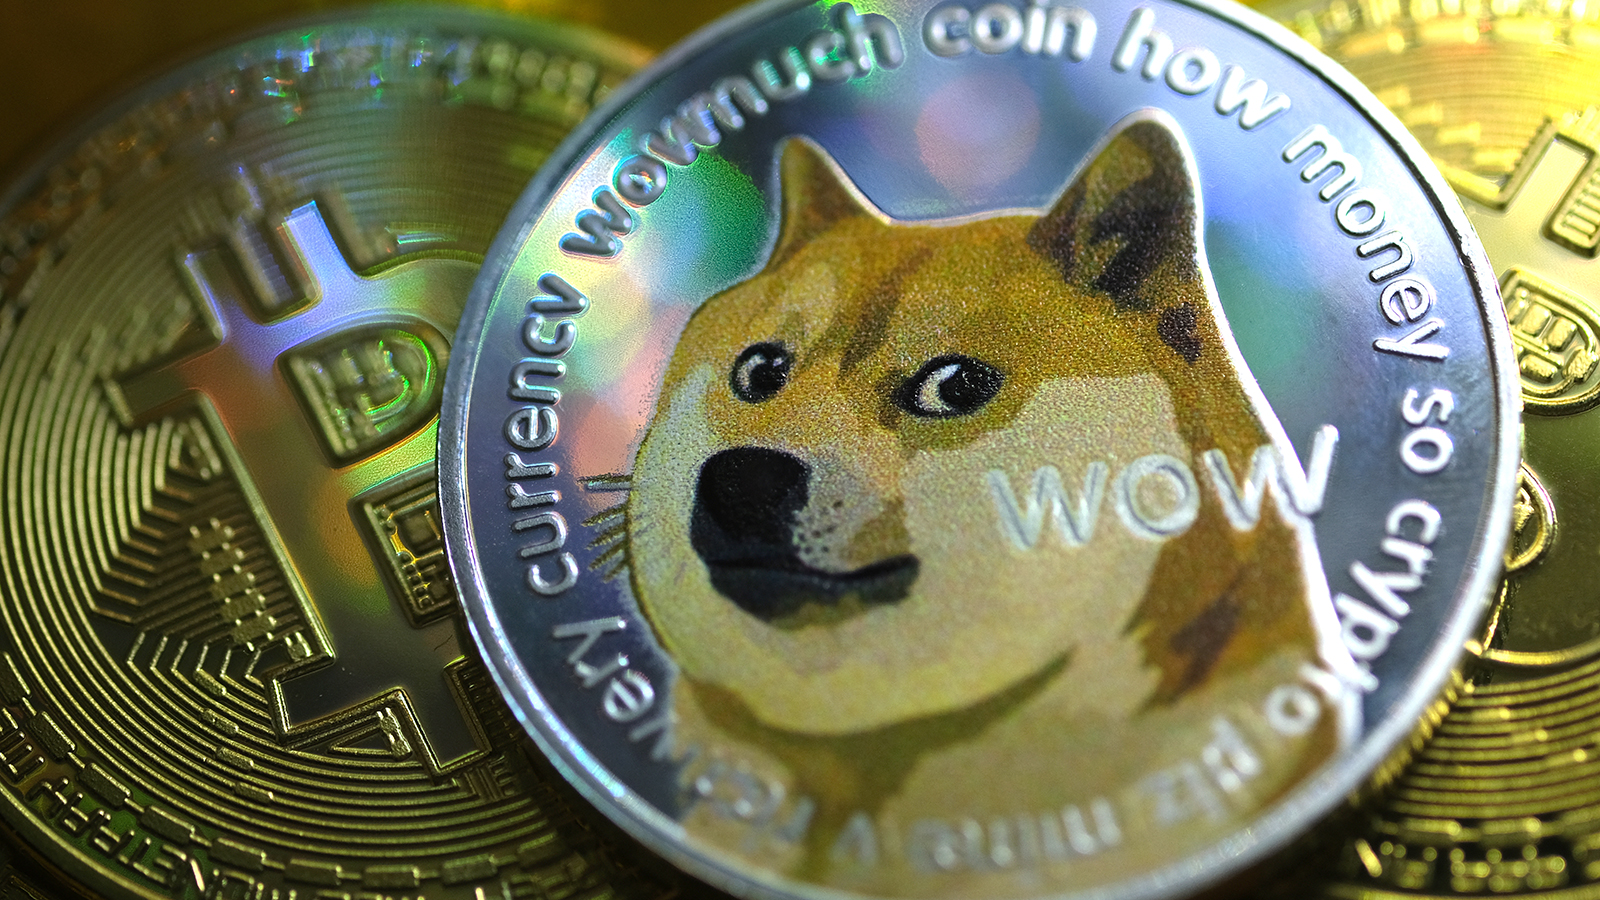 Dogecoin is still in the dog house after Elon Musk's 'SNL' appearance